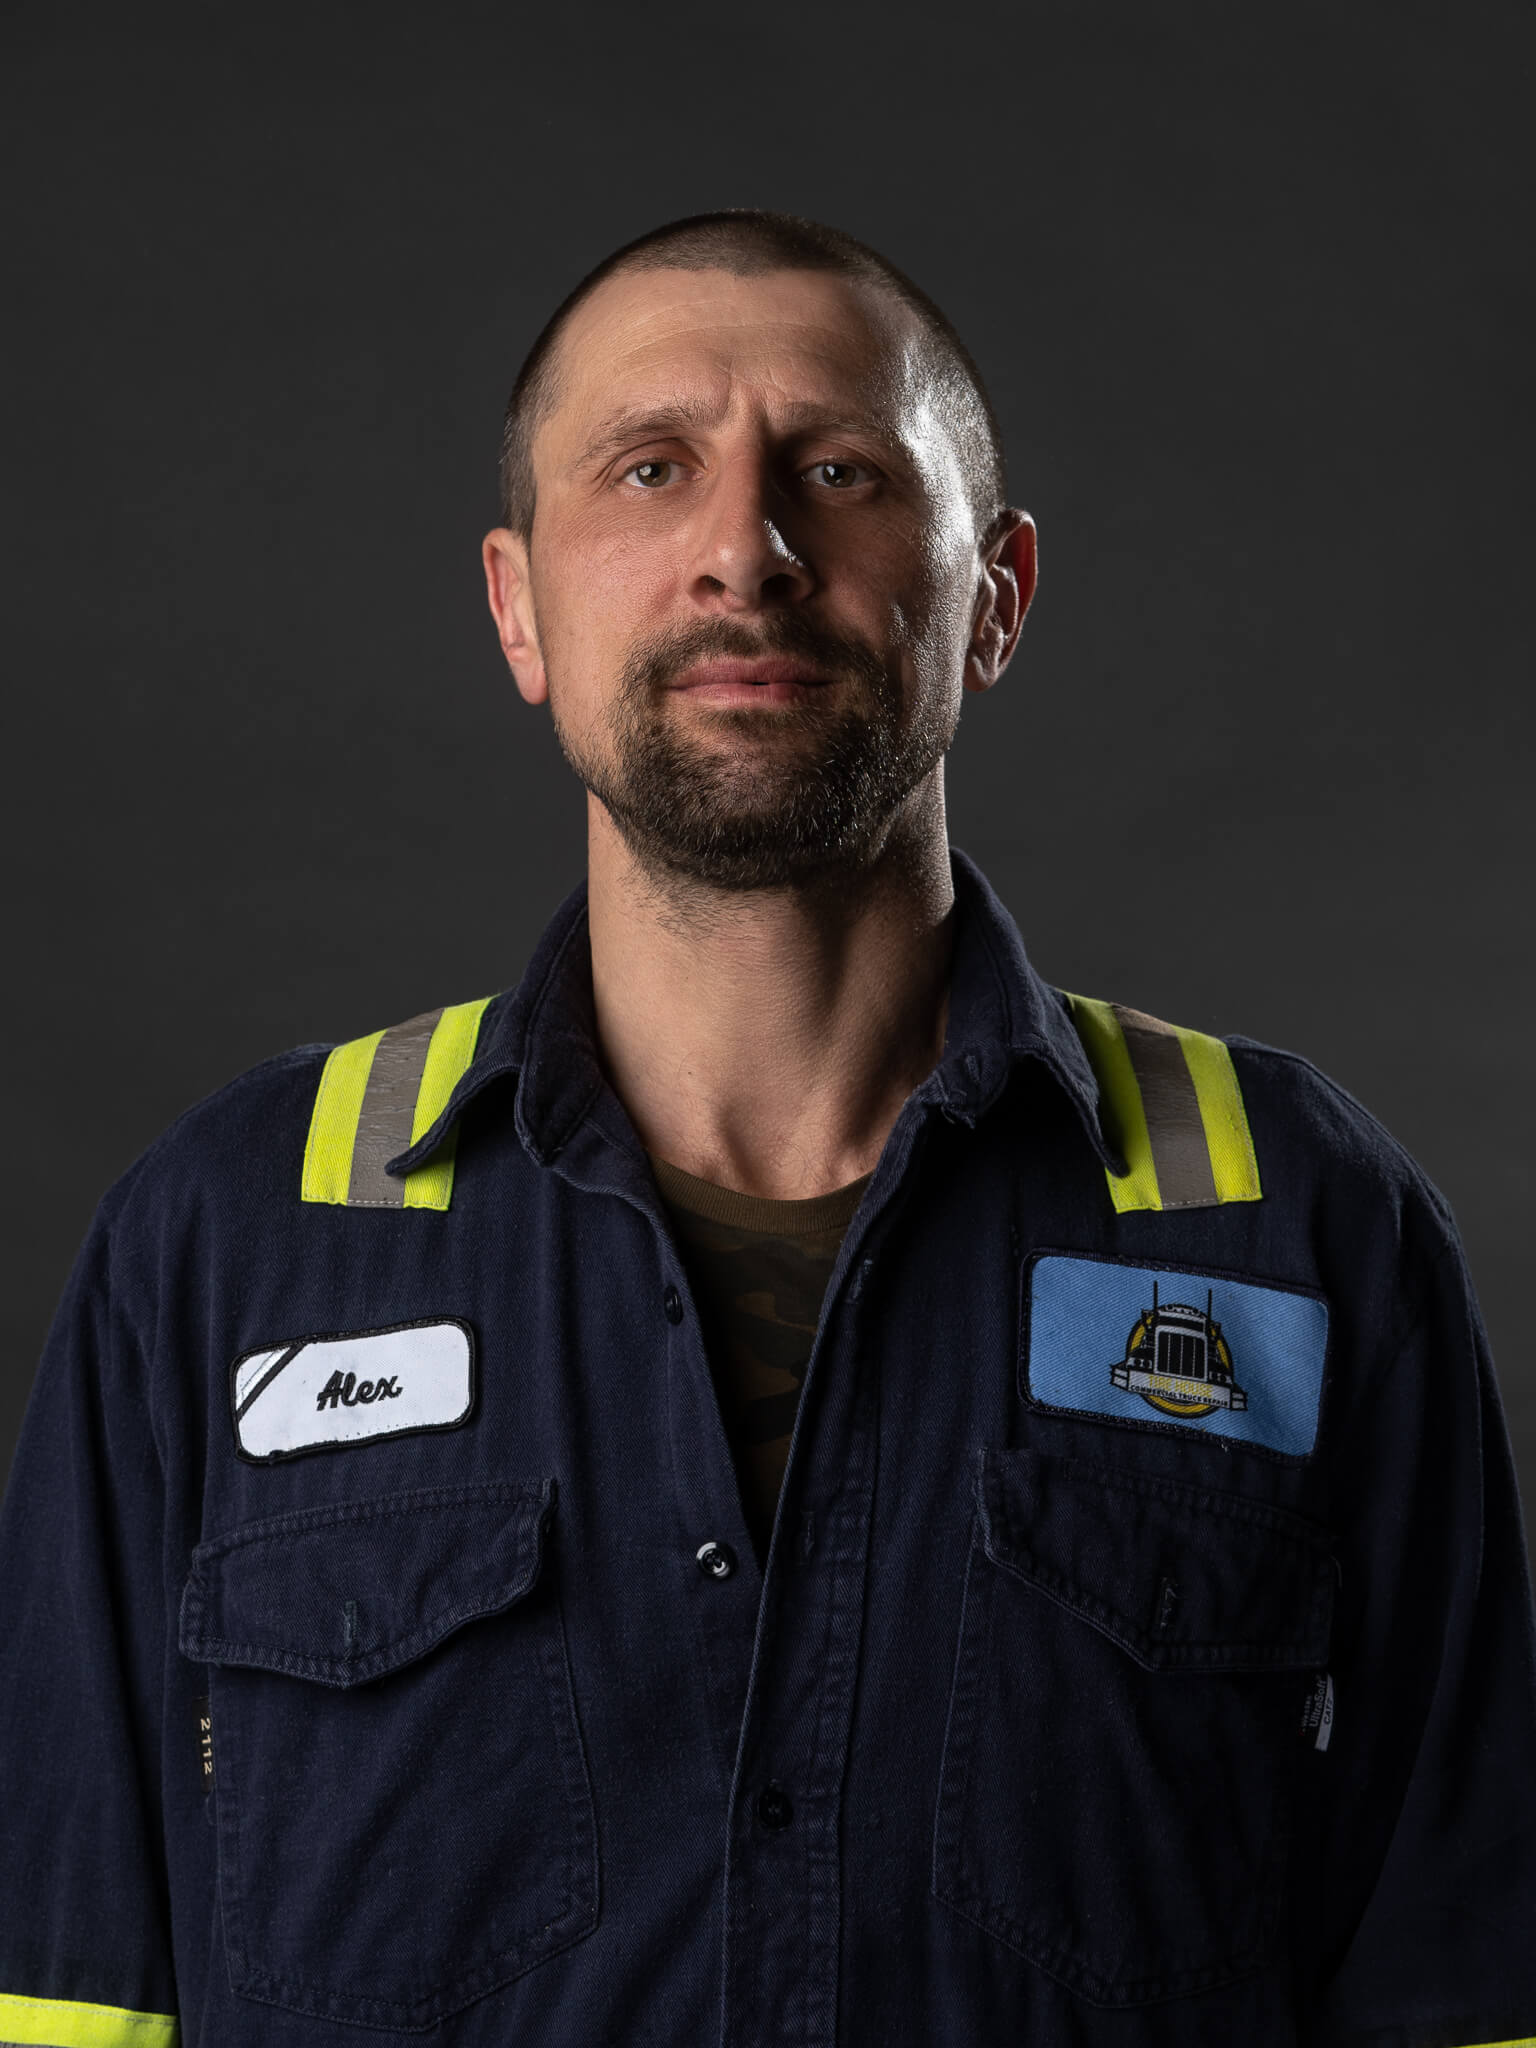 ALEXANDRU SIRBU – MECHANIC (1)